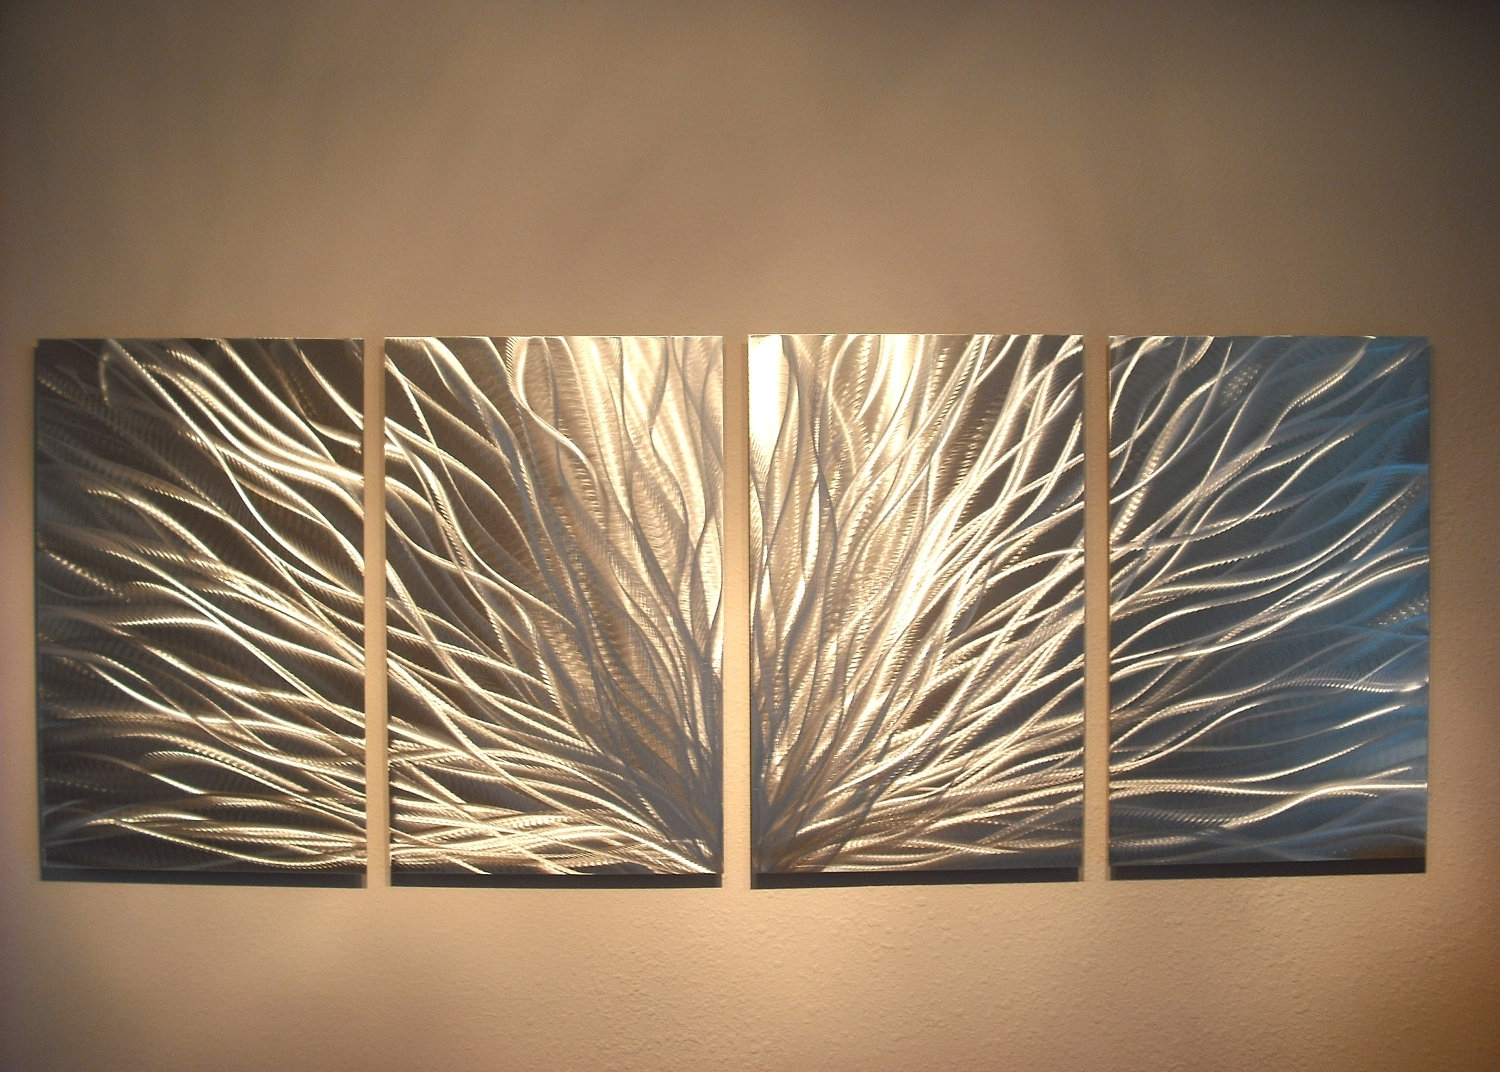 Radiance – Abstract Metal Wall Art Contemporary Modern Decor Regarding Newest Abstract Metal Wall Art Painting (View 15 of 20)